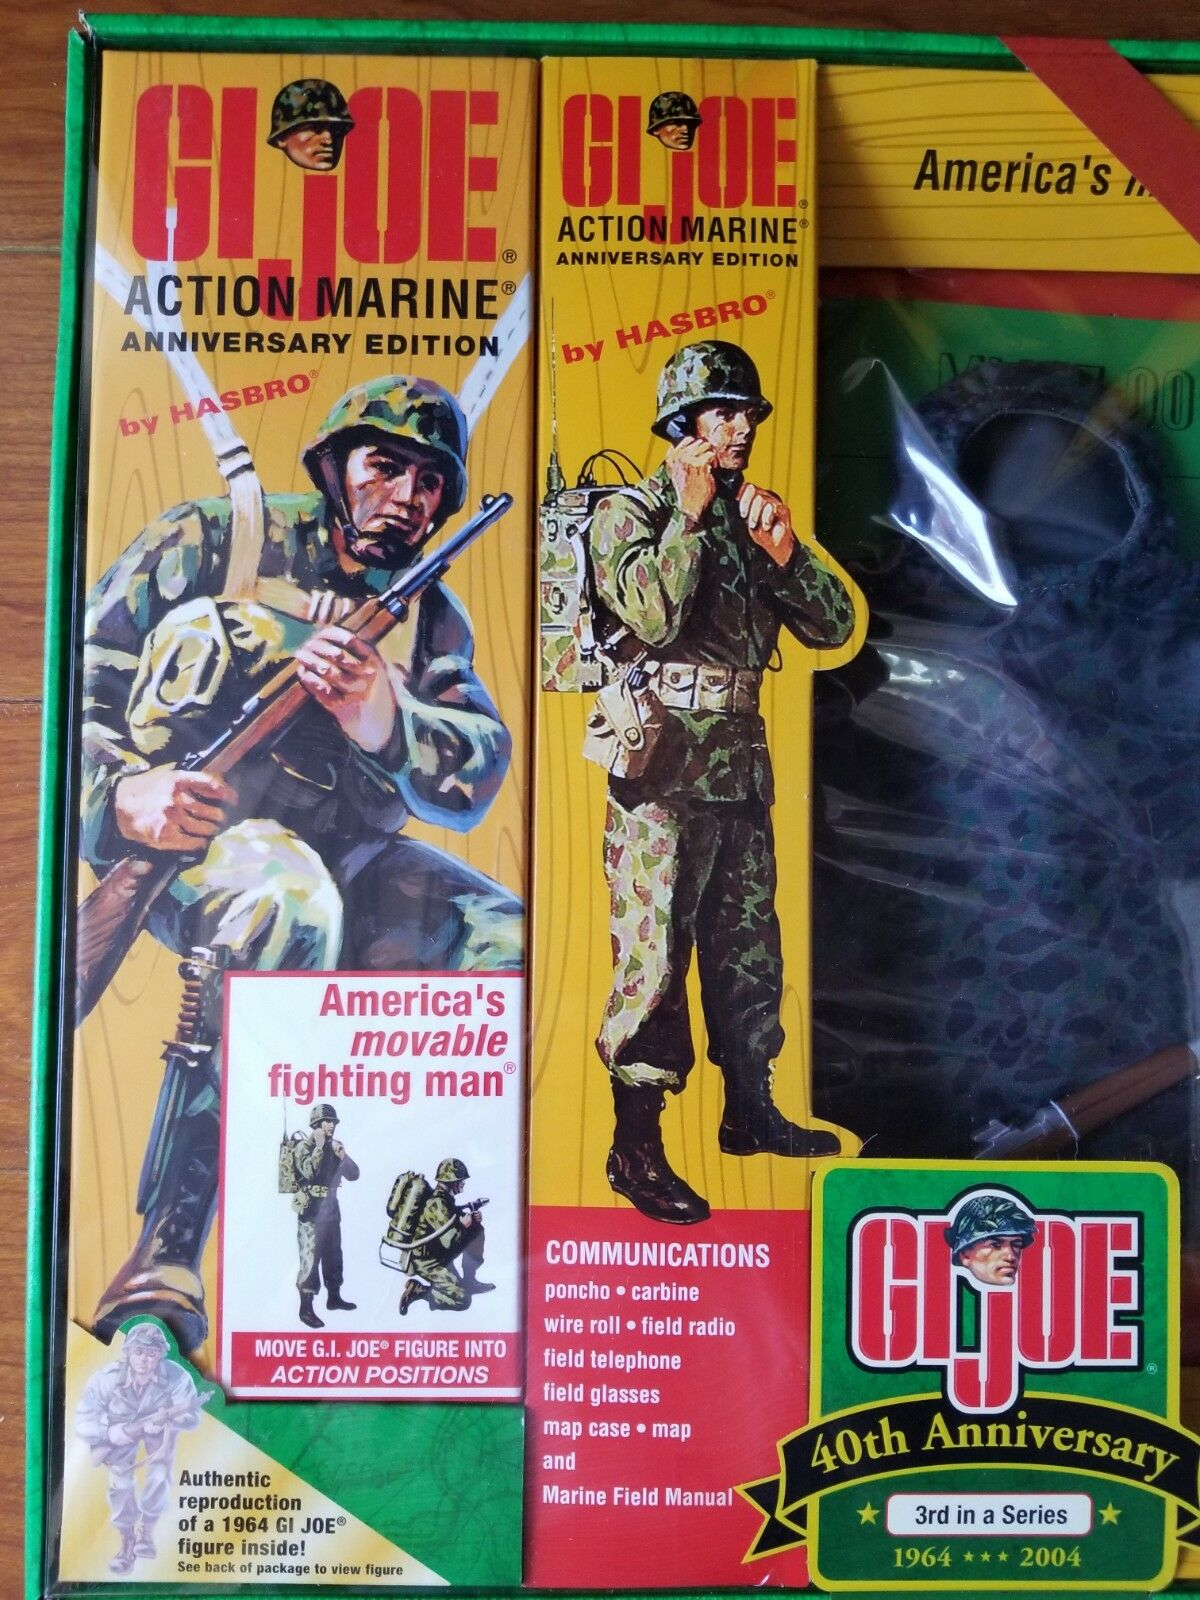 12 INCH G.I.JOE TIMELESS COLLECTION 40TH ANNIVERSARY 3RD IN A SERIES MARINE 2003